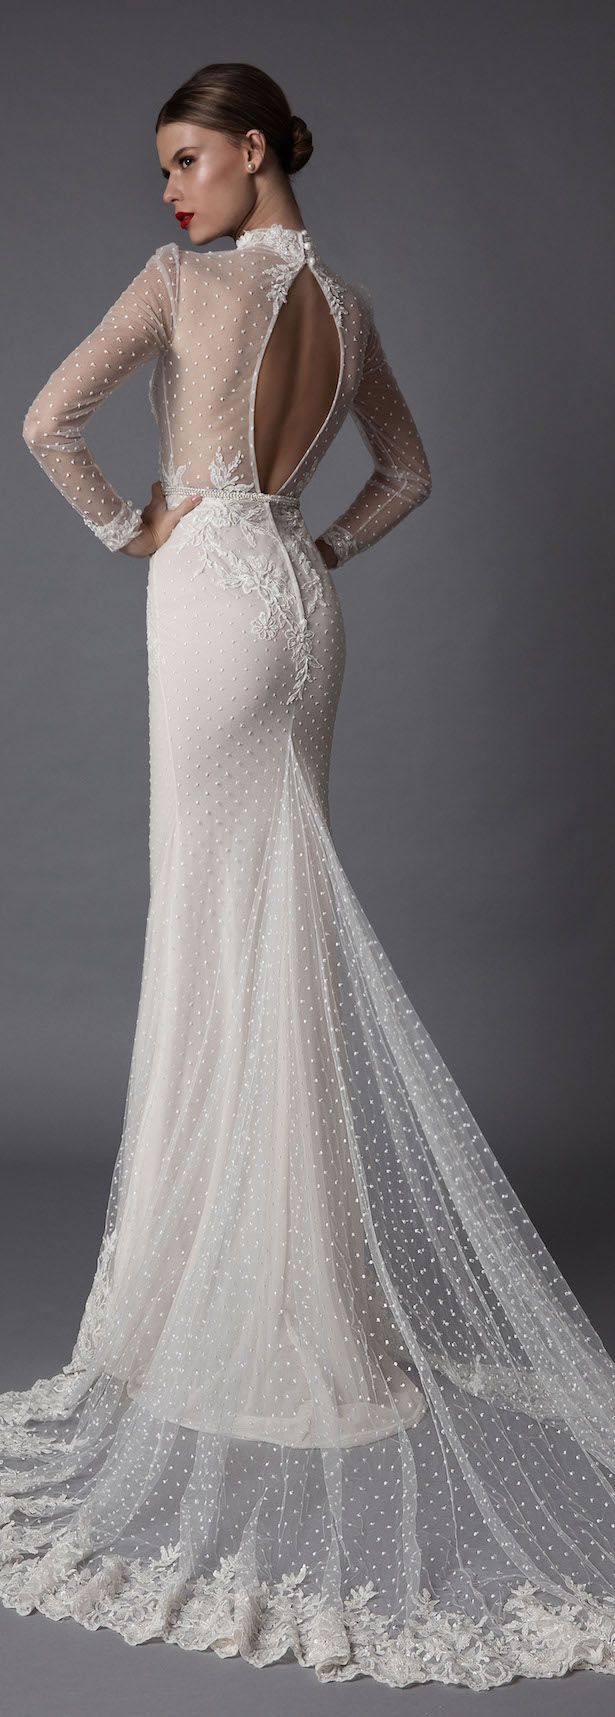 Muse By Berta Fall 2017 Bridal Collection Things I Love